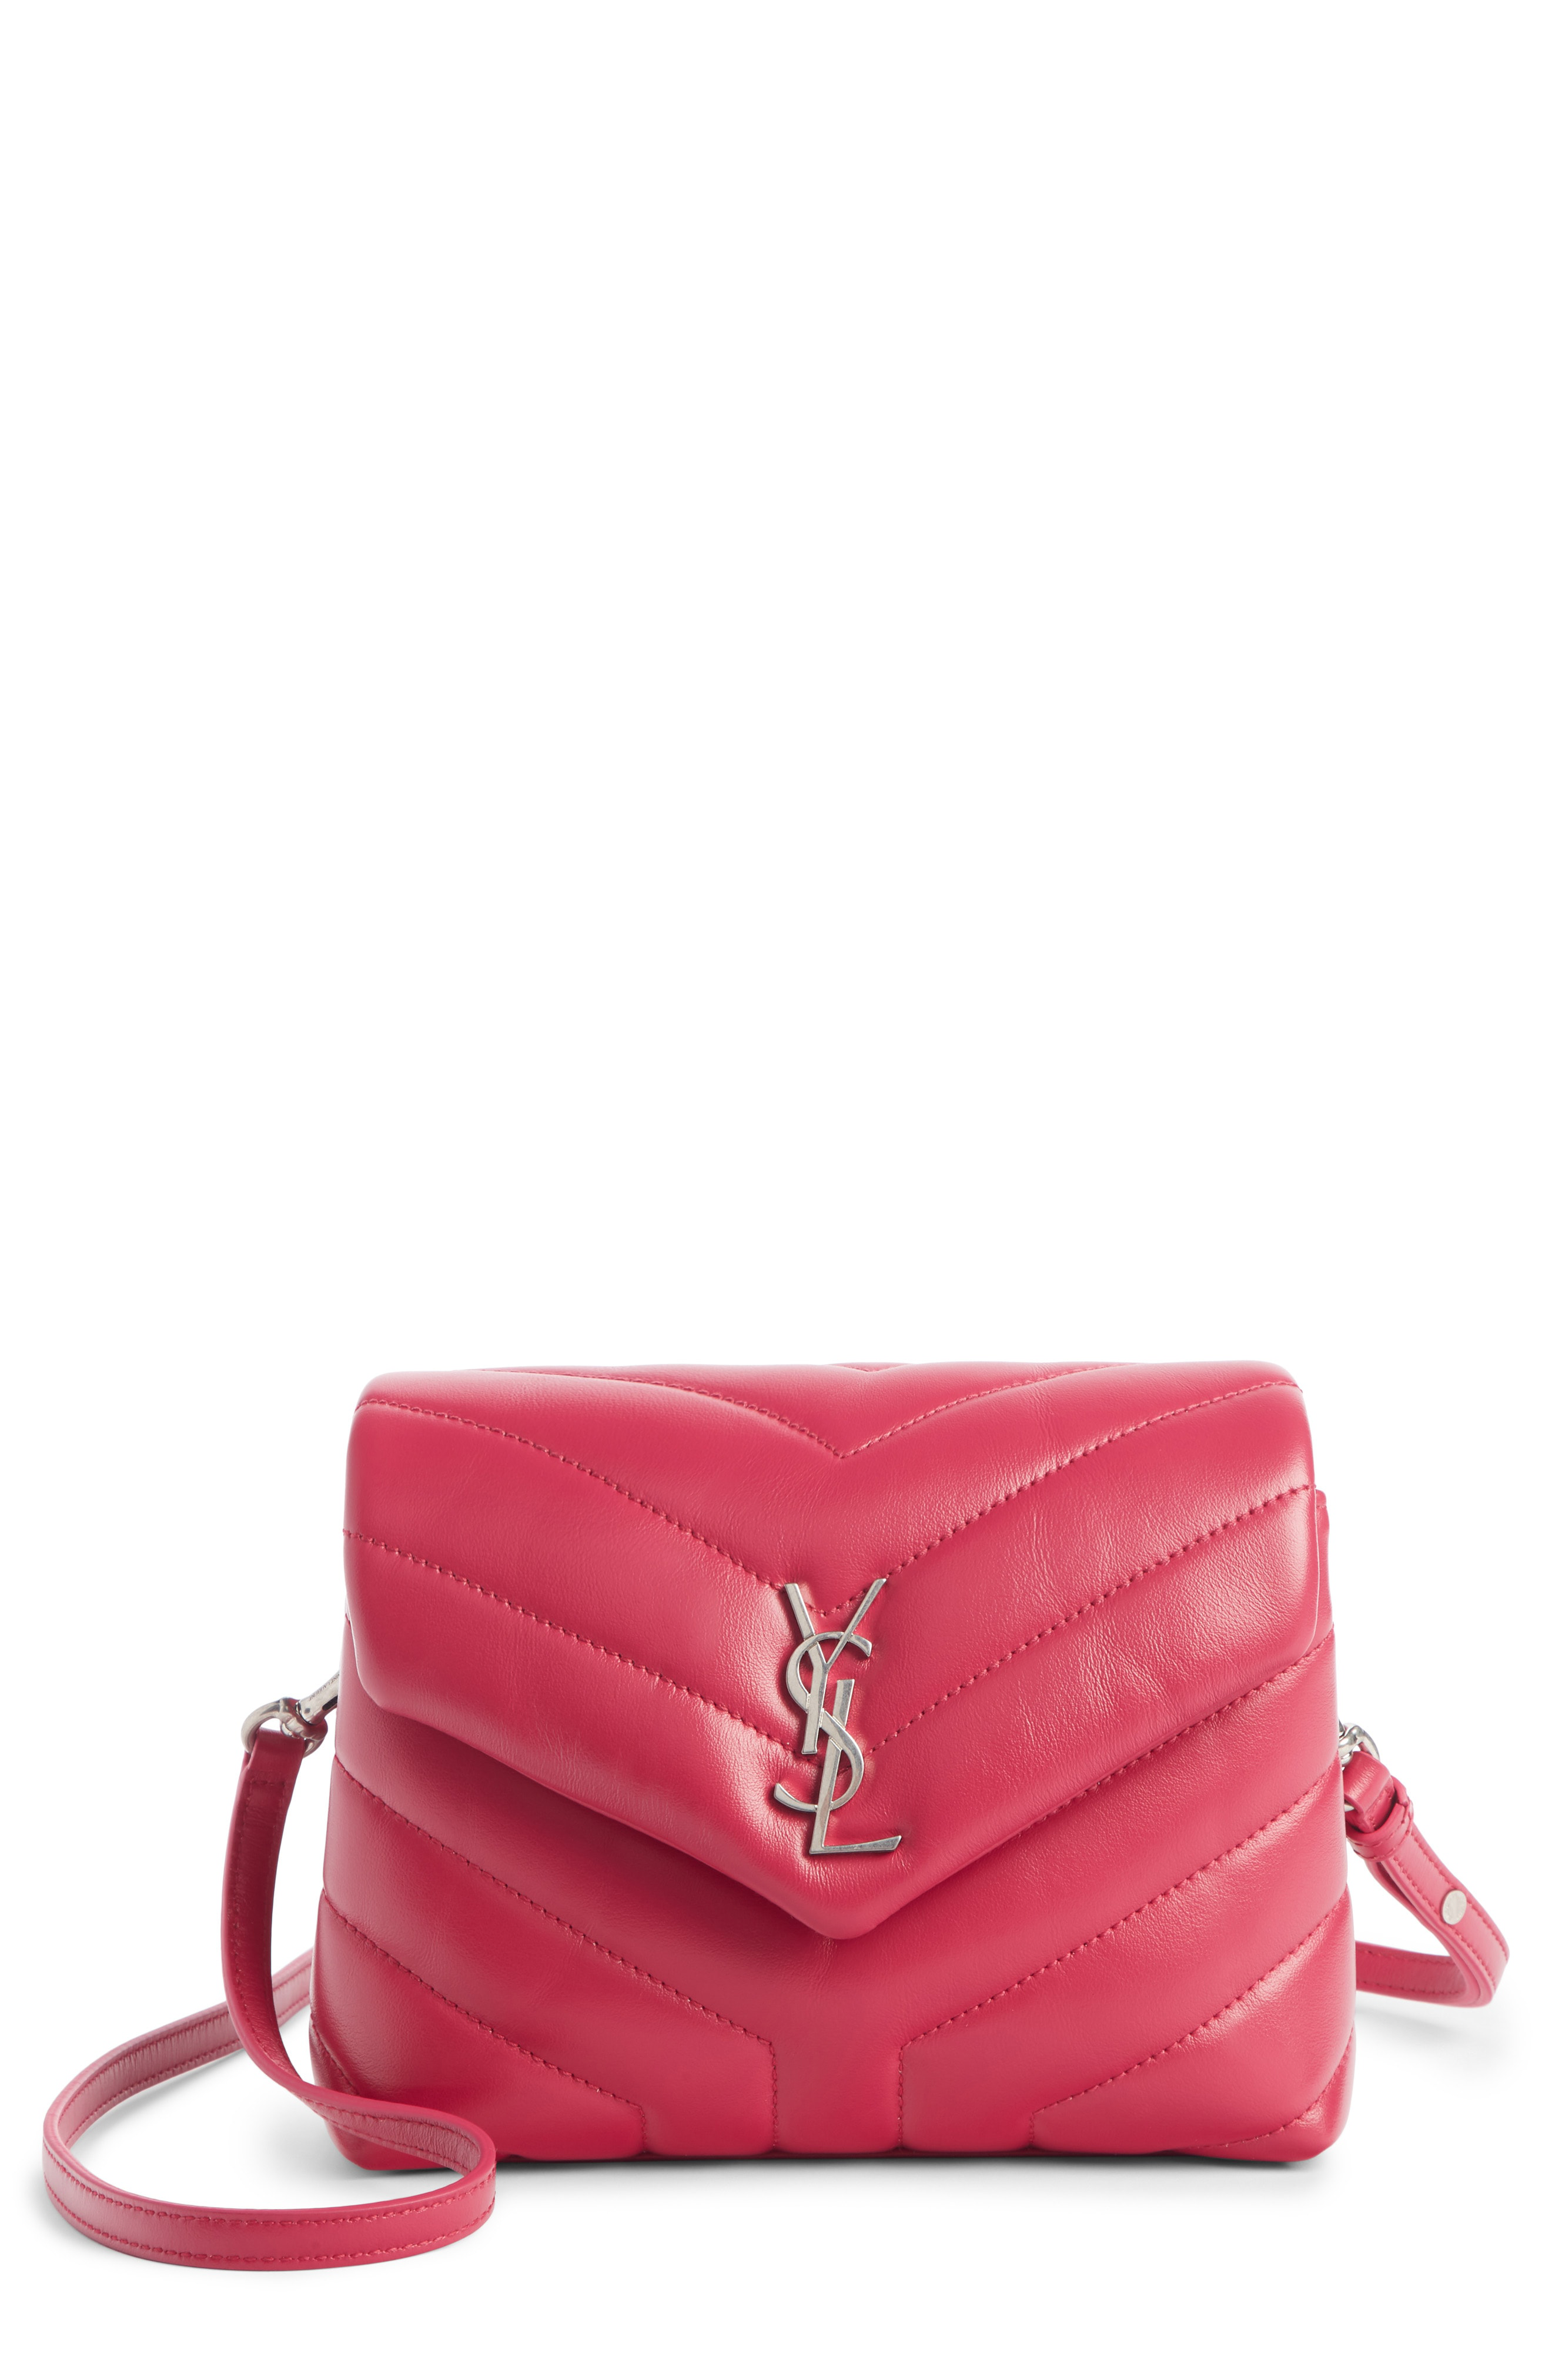 4fbc3a444d7b2 Saint Laurent Toy Loulou Calfskin Leather Crossbody Bag - Pink In Freesia